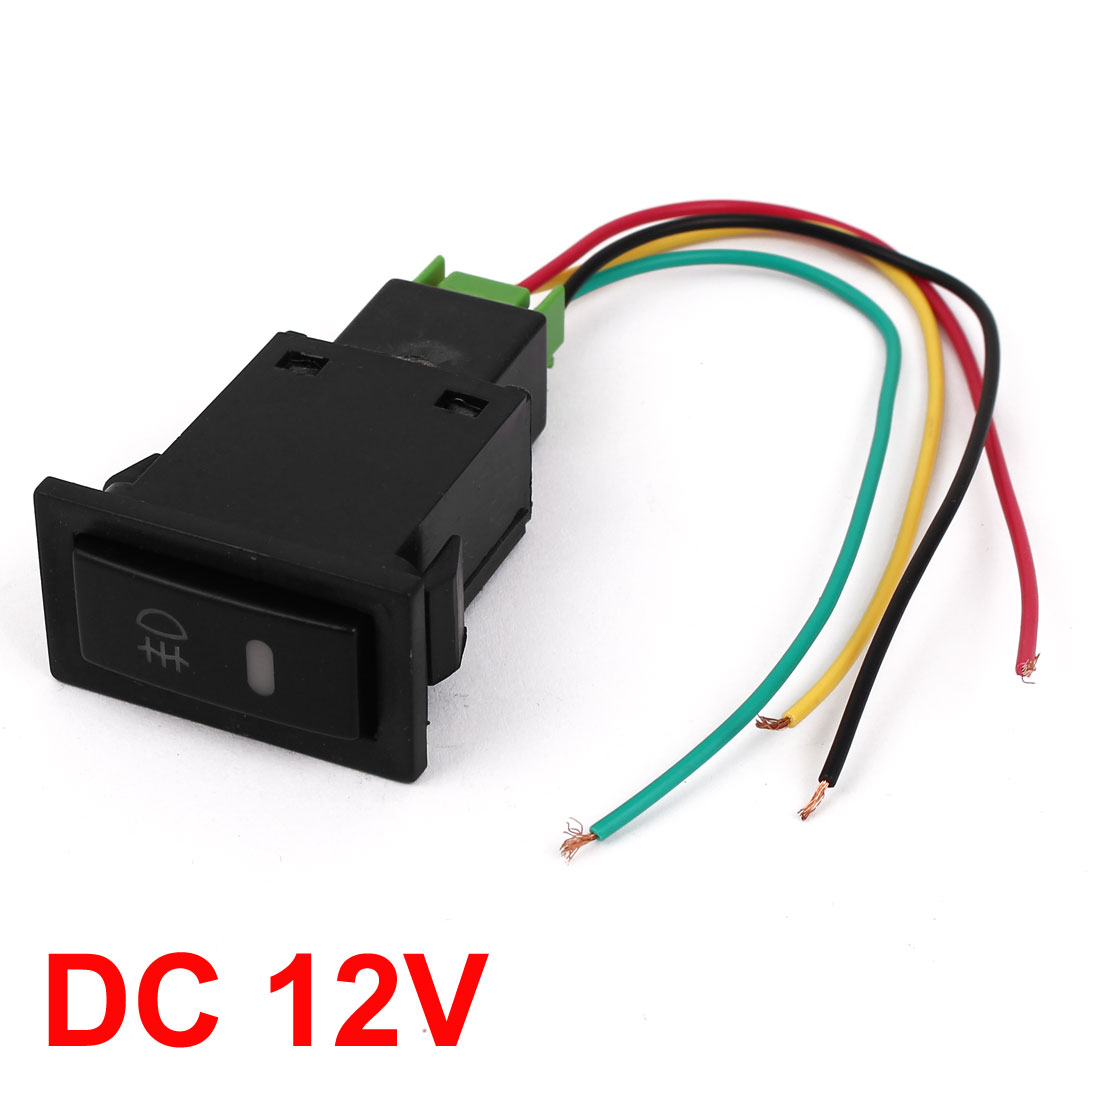 x autohaux dc12v panel mount yellow pilot lamp 4 wire fog lightx autohaux dc12v panel mount yellow pilot lamp 4 wire fog light switch for toyota camry on aliexpress com alibaba group